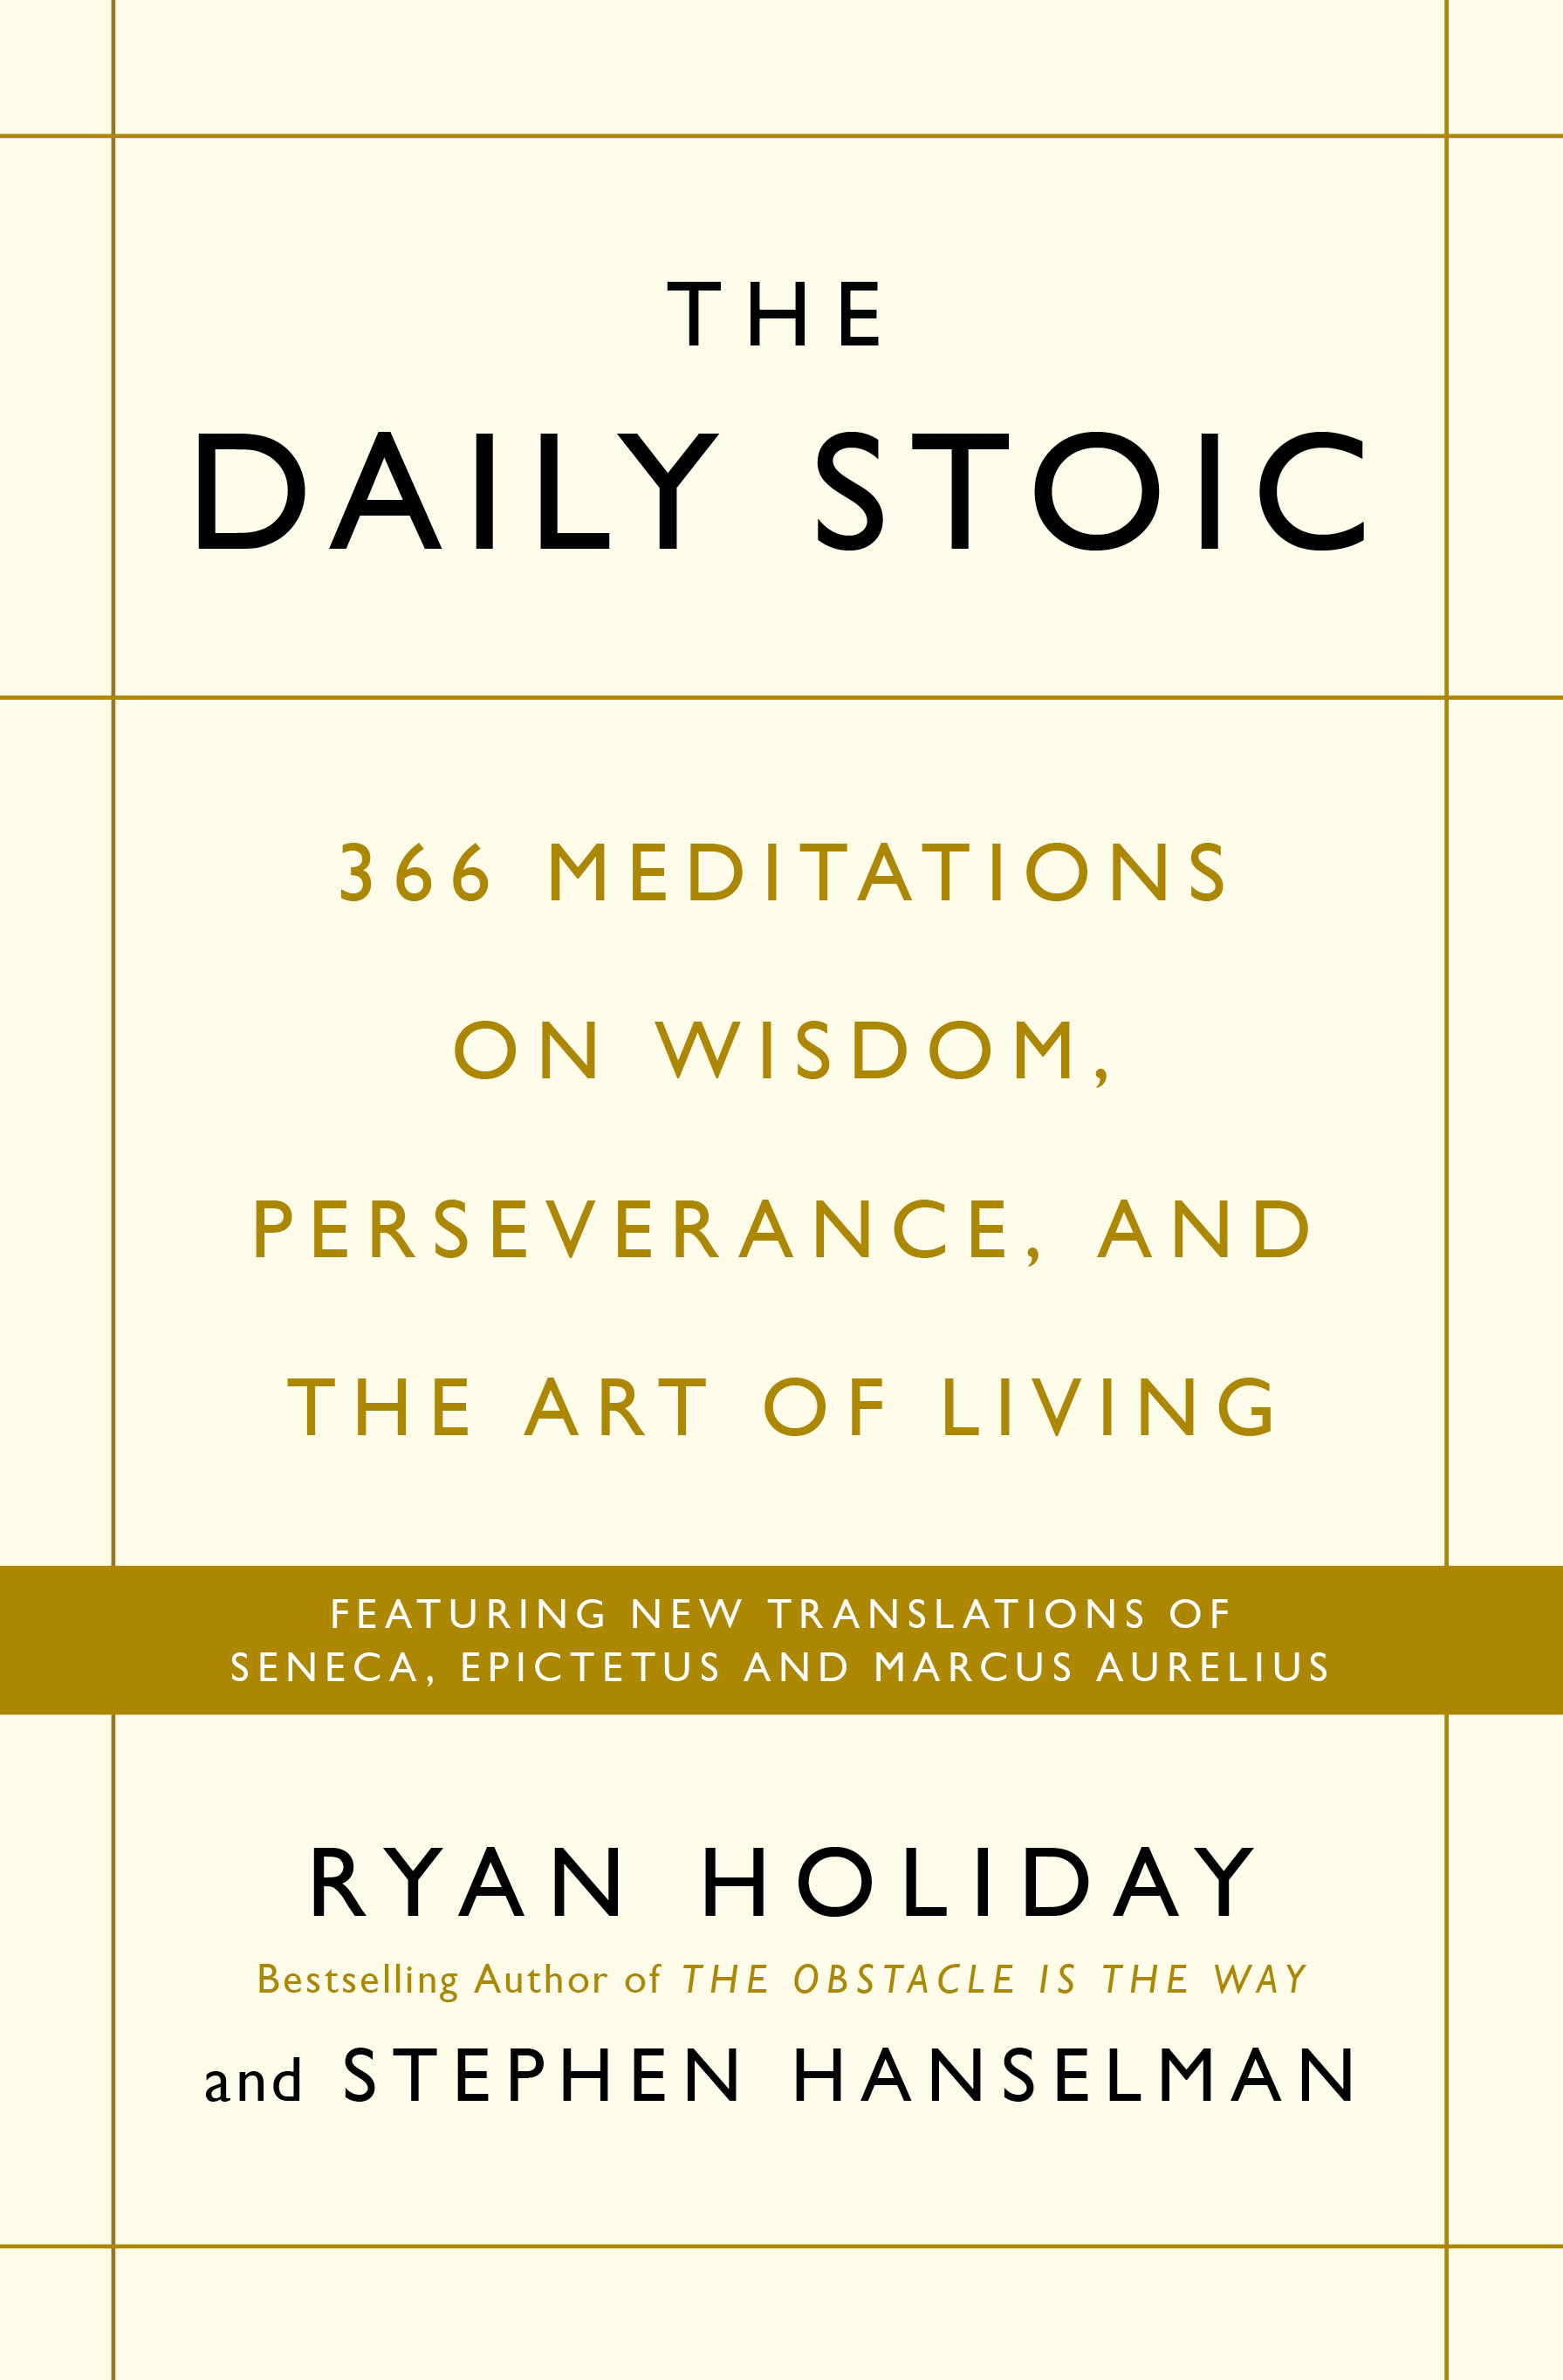 The Daily Stoic: 366 Meditations on Wisdom, Perseverance, and the Art of Living:  Featuring new translations of Seneca, Epictetus, and Marcus Aurelius by Ryan Holiday, ISBN: 9781781257654